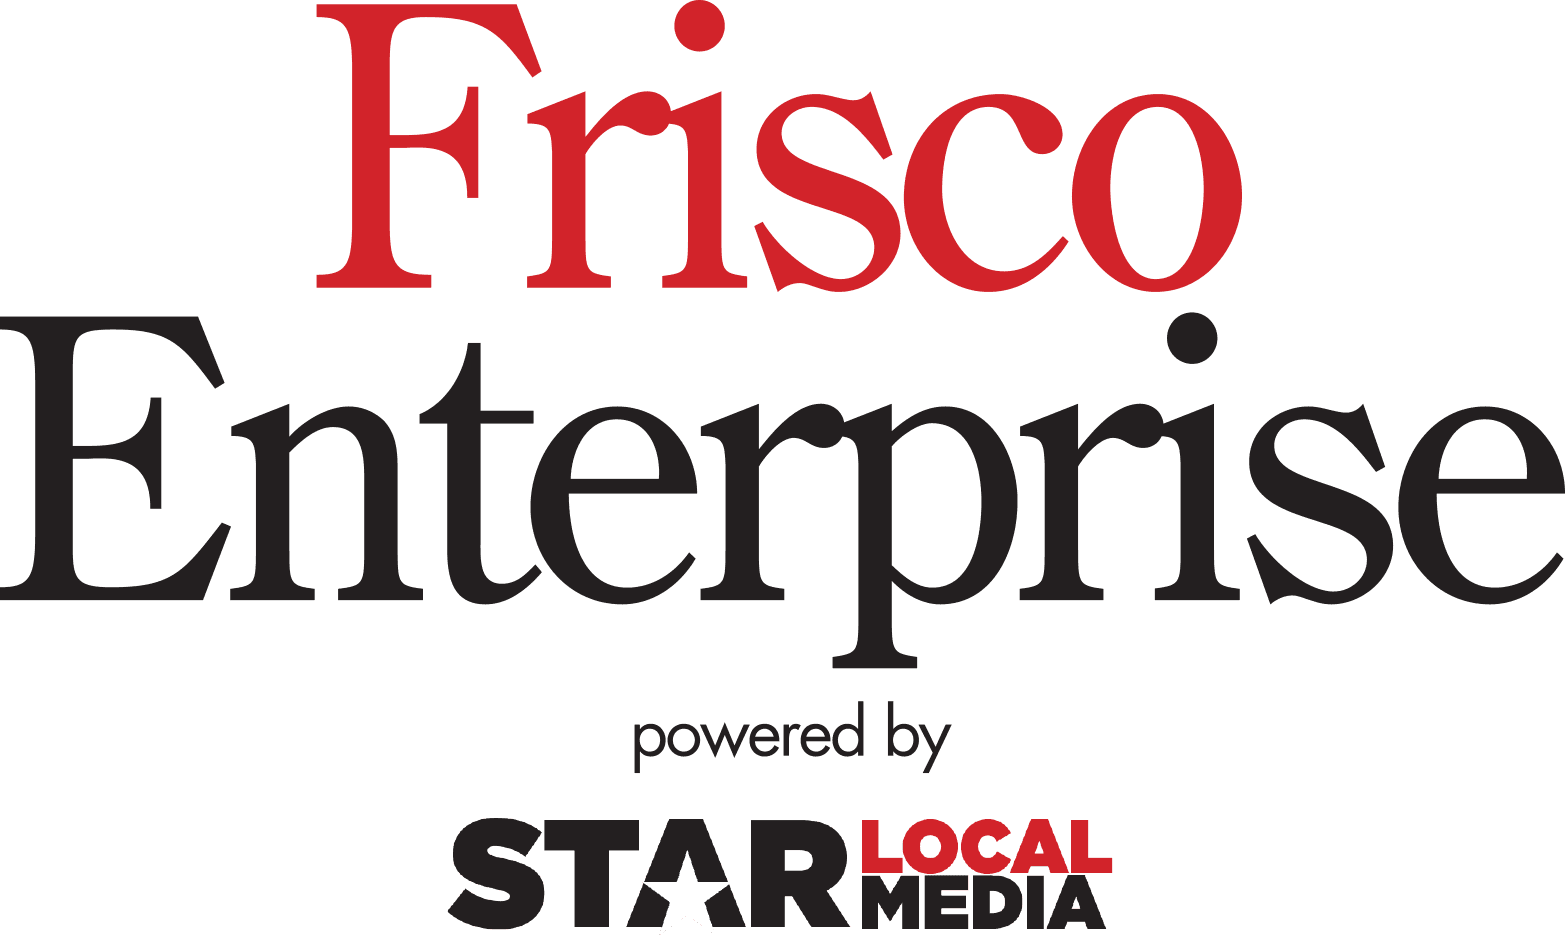 Frisco Enterprise